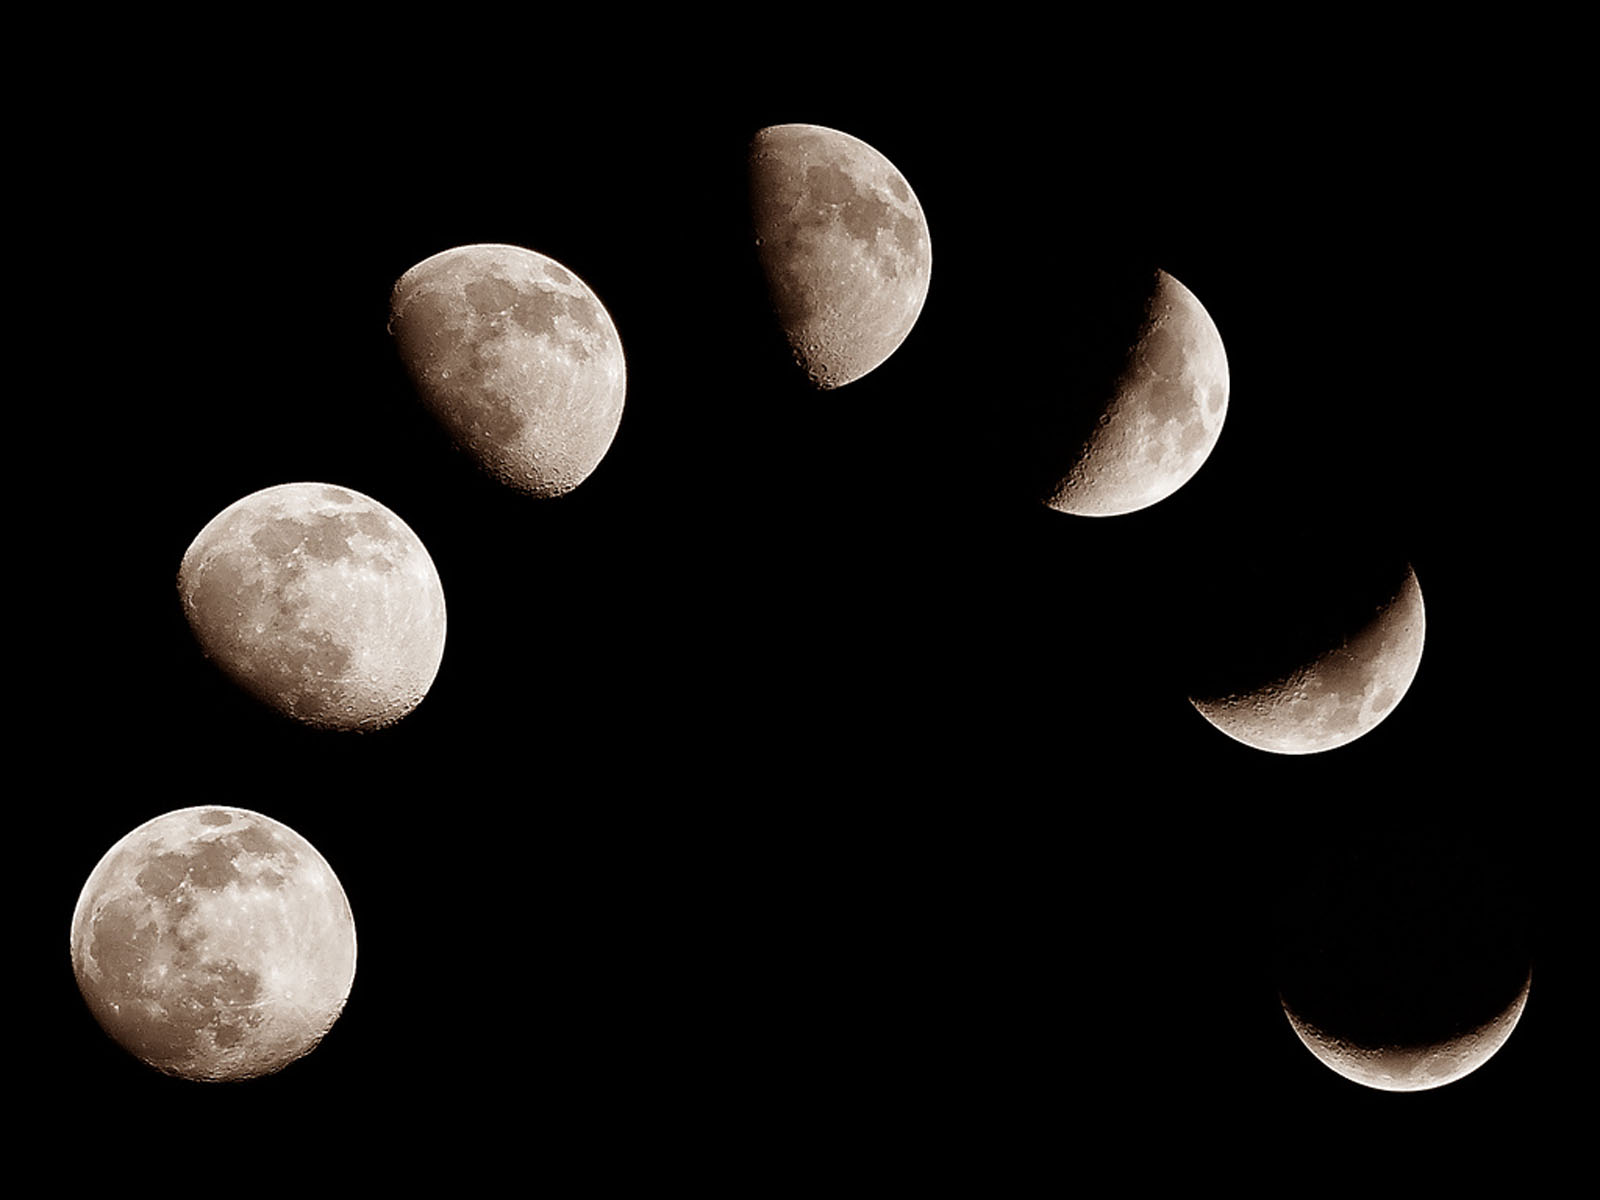 Cute Naughty Babies Hd Wallpapers Wallpapers Moon Phases